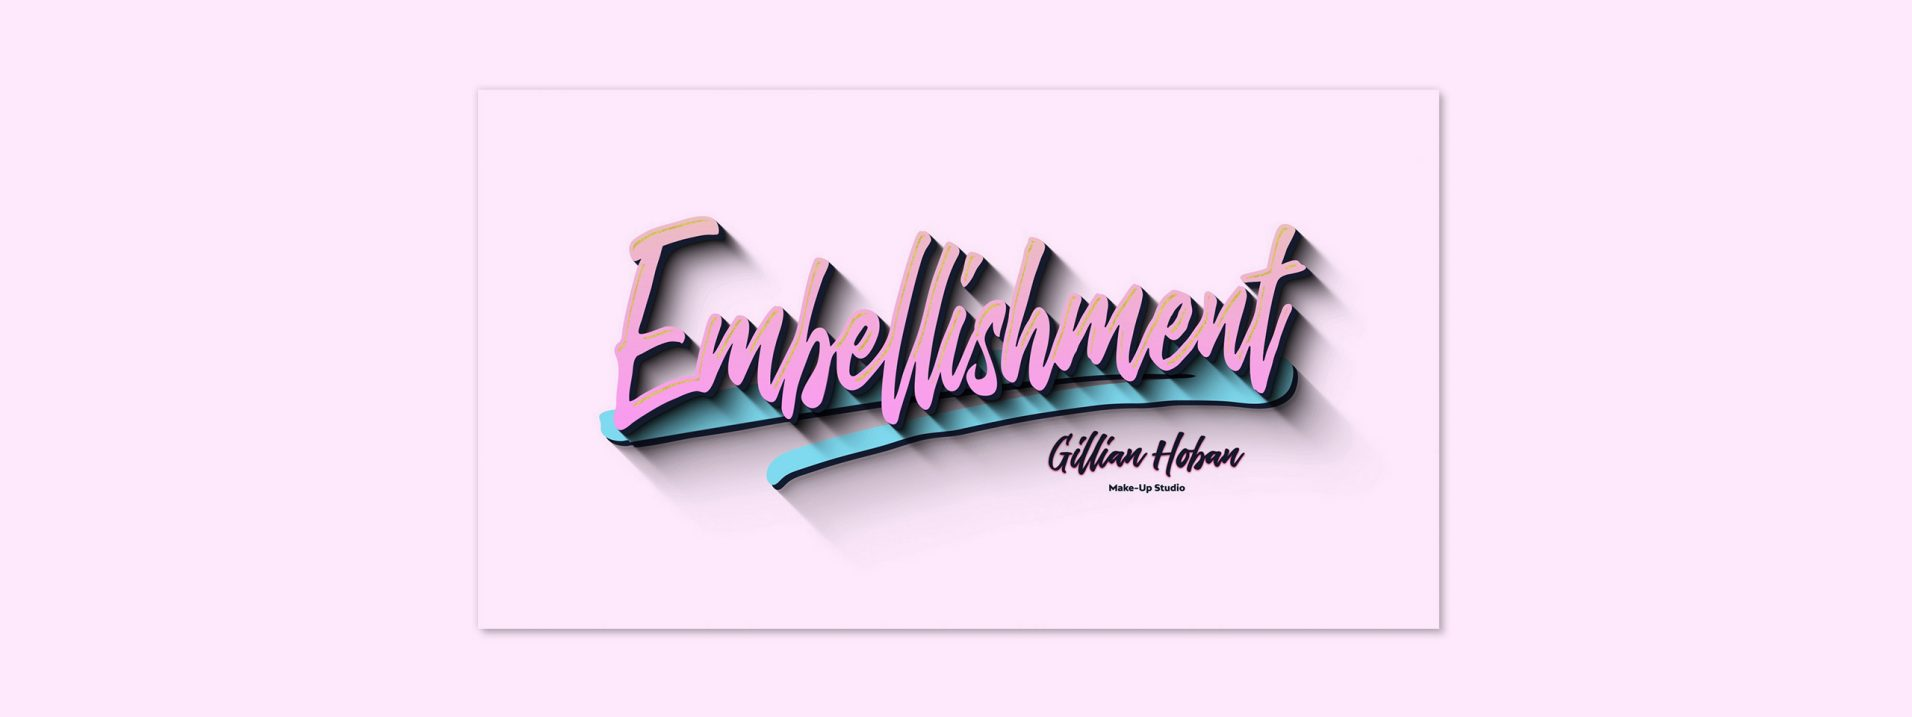 Embellishment logo created for Gillian Hoban Make-Up Studio